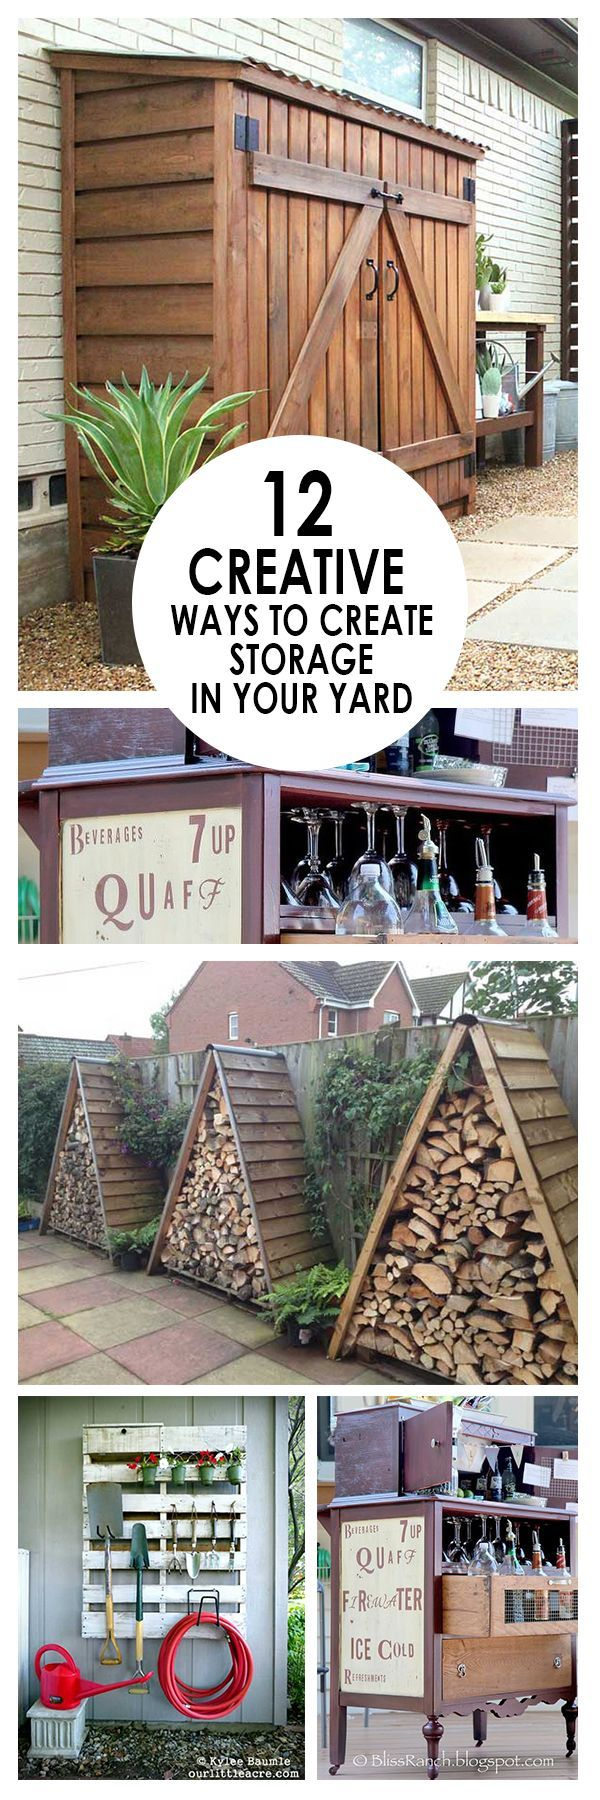 12 Creative Ways to Create Storage in Your Yard #shedplans